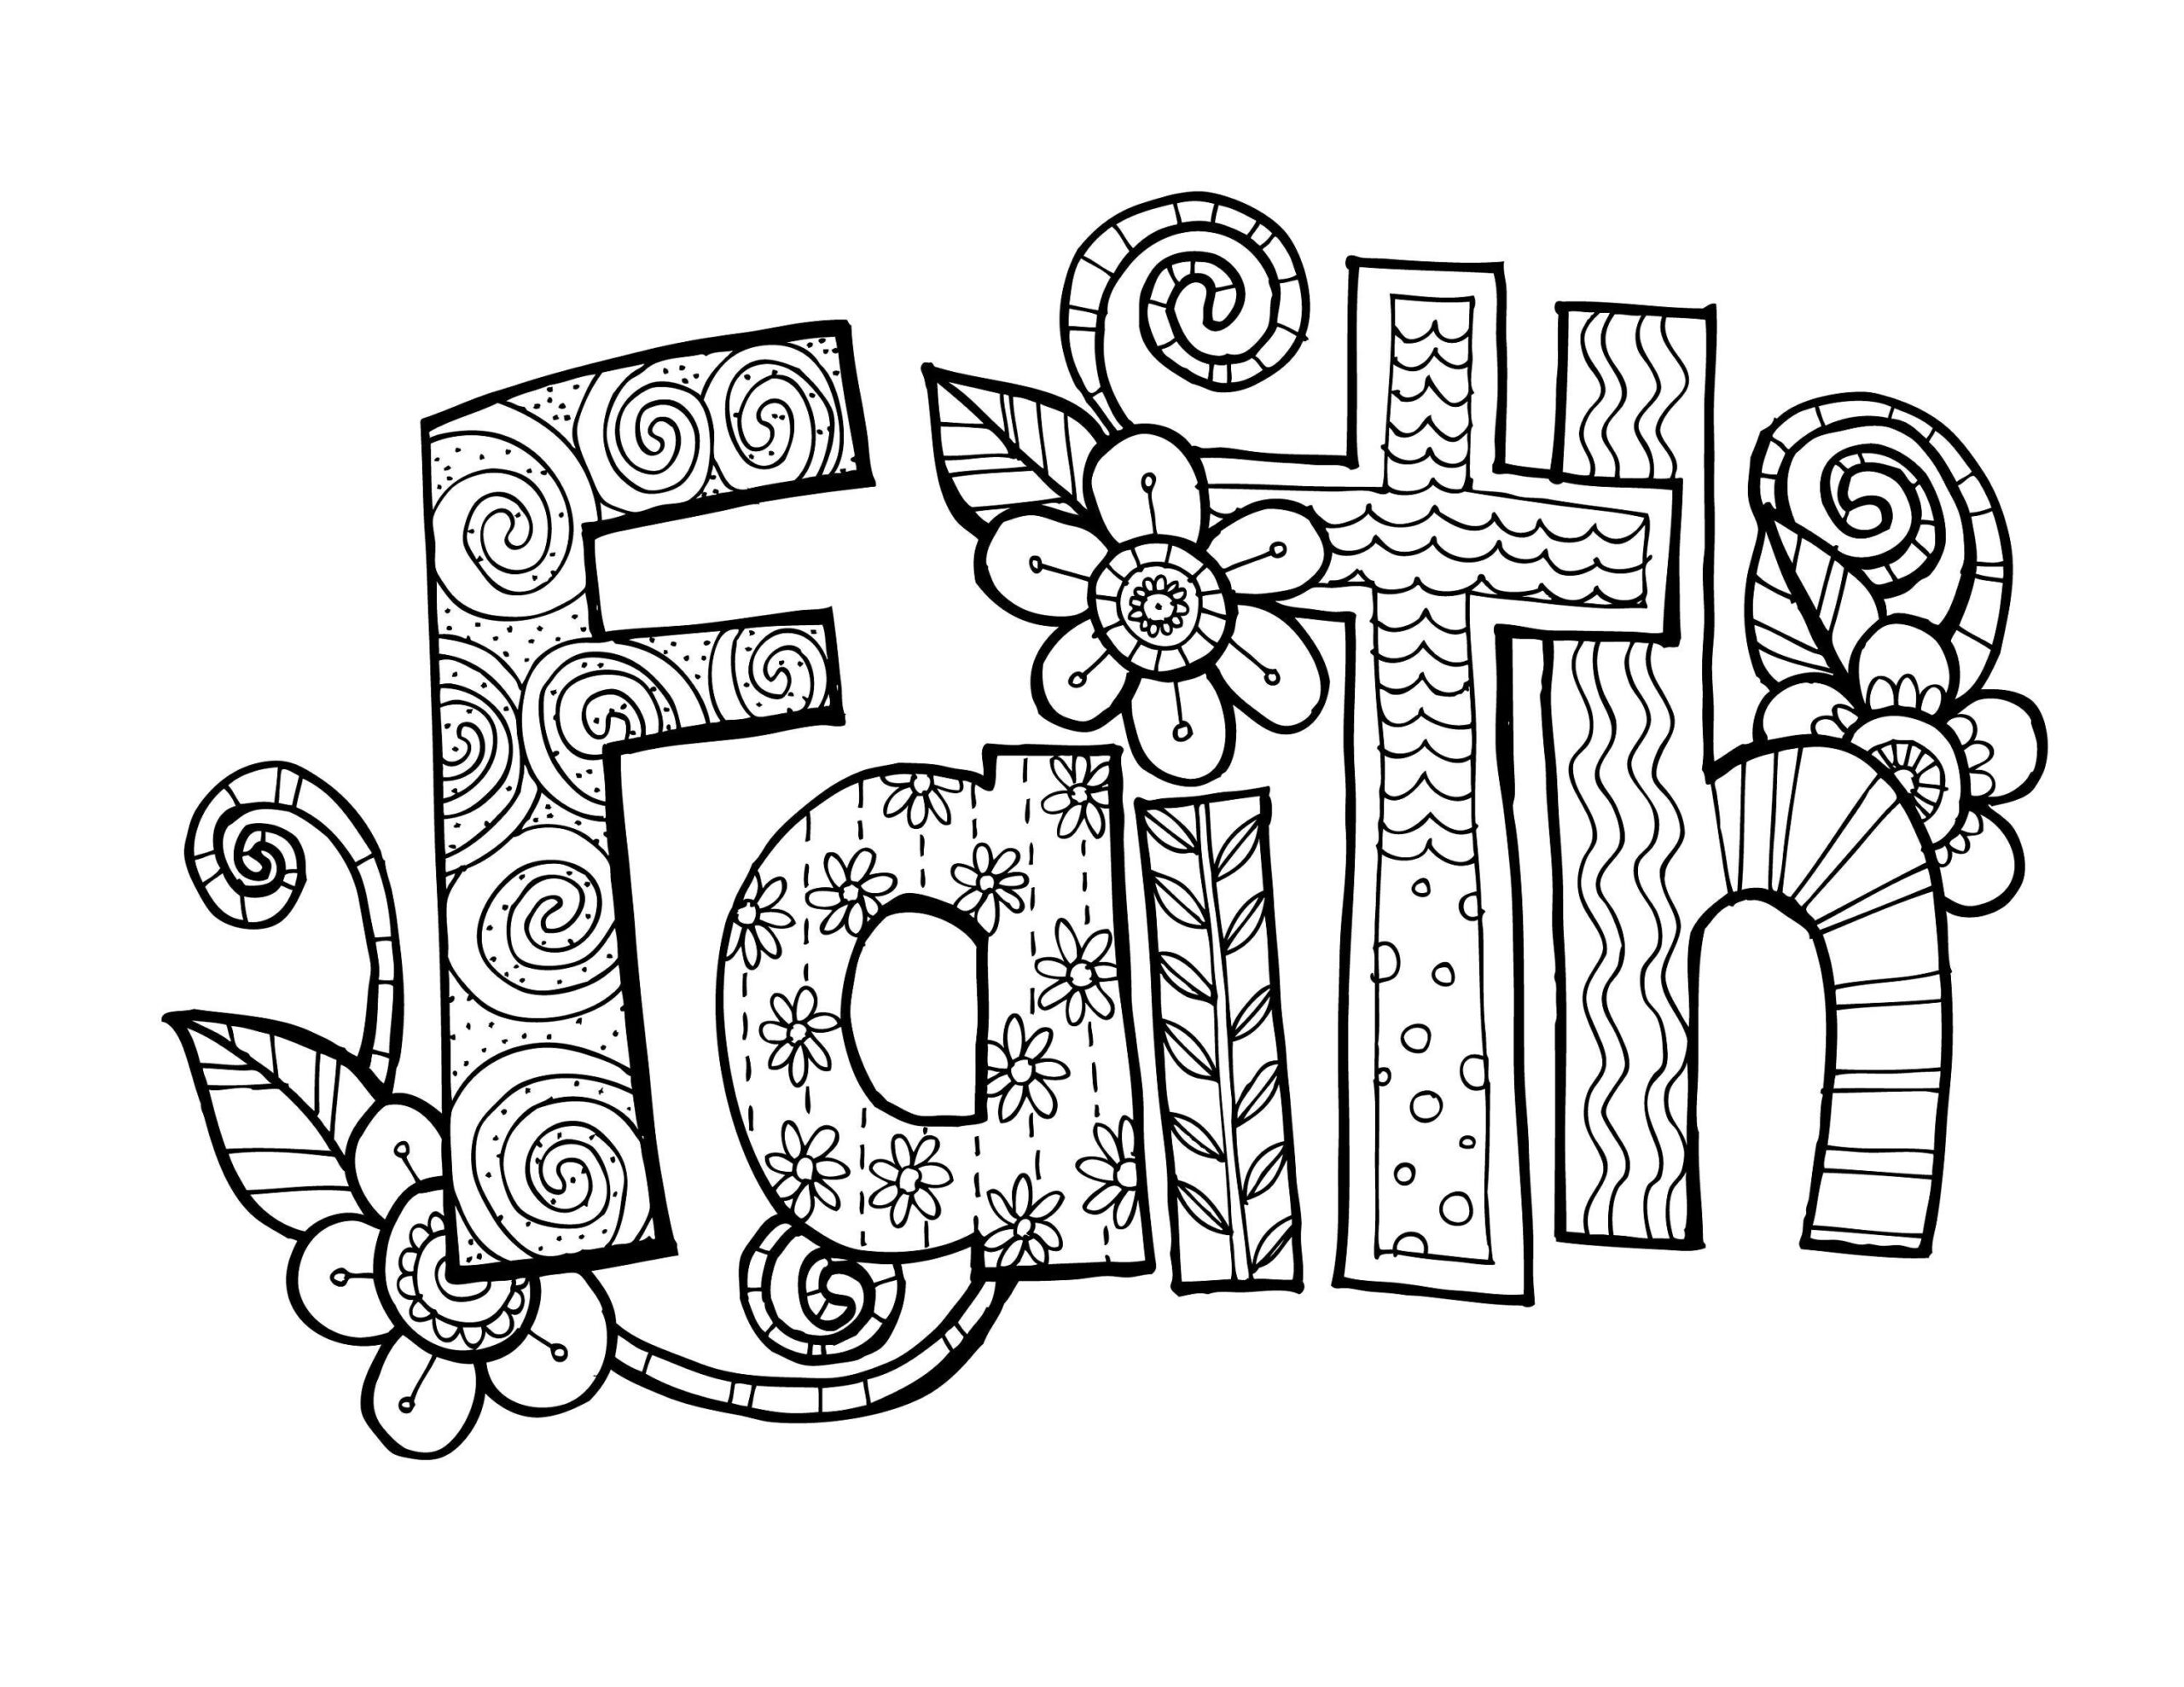 kpm doodles coloring faith etsy doodle whatare the primary colors colorona acrylic paint coloring pages Faith Coloring Page